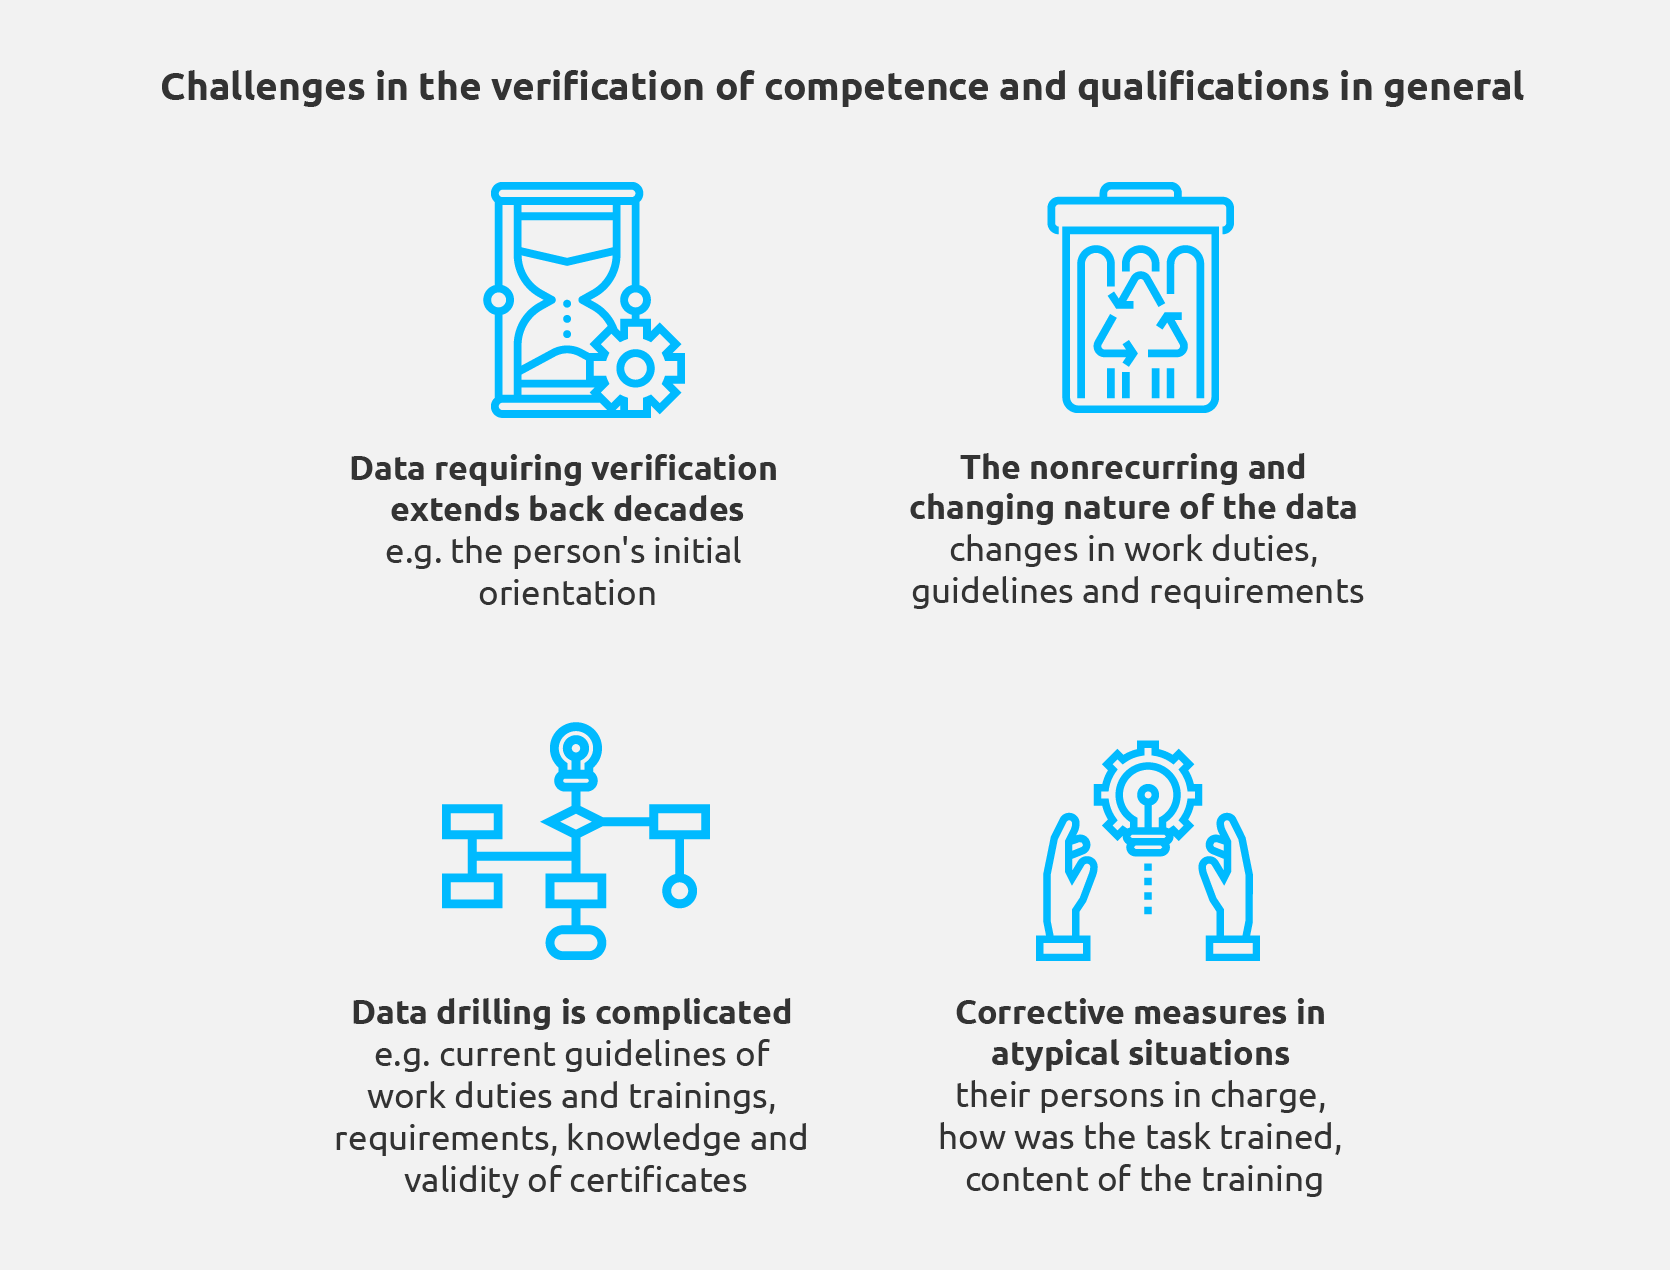 Challenges in the verification of competence and qualifications in general